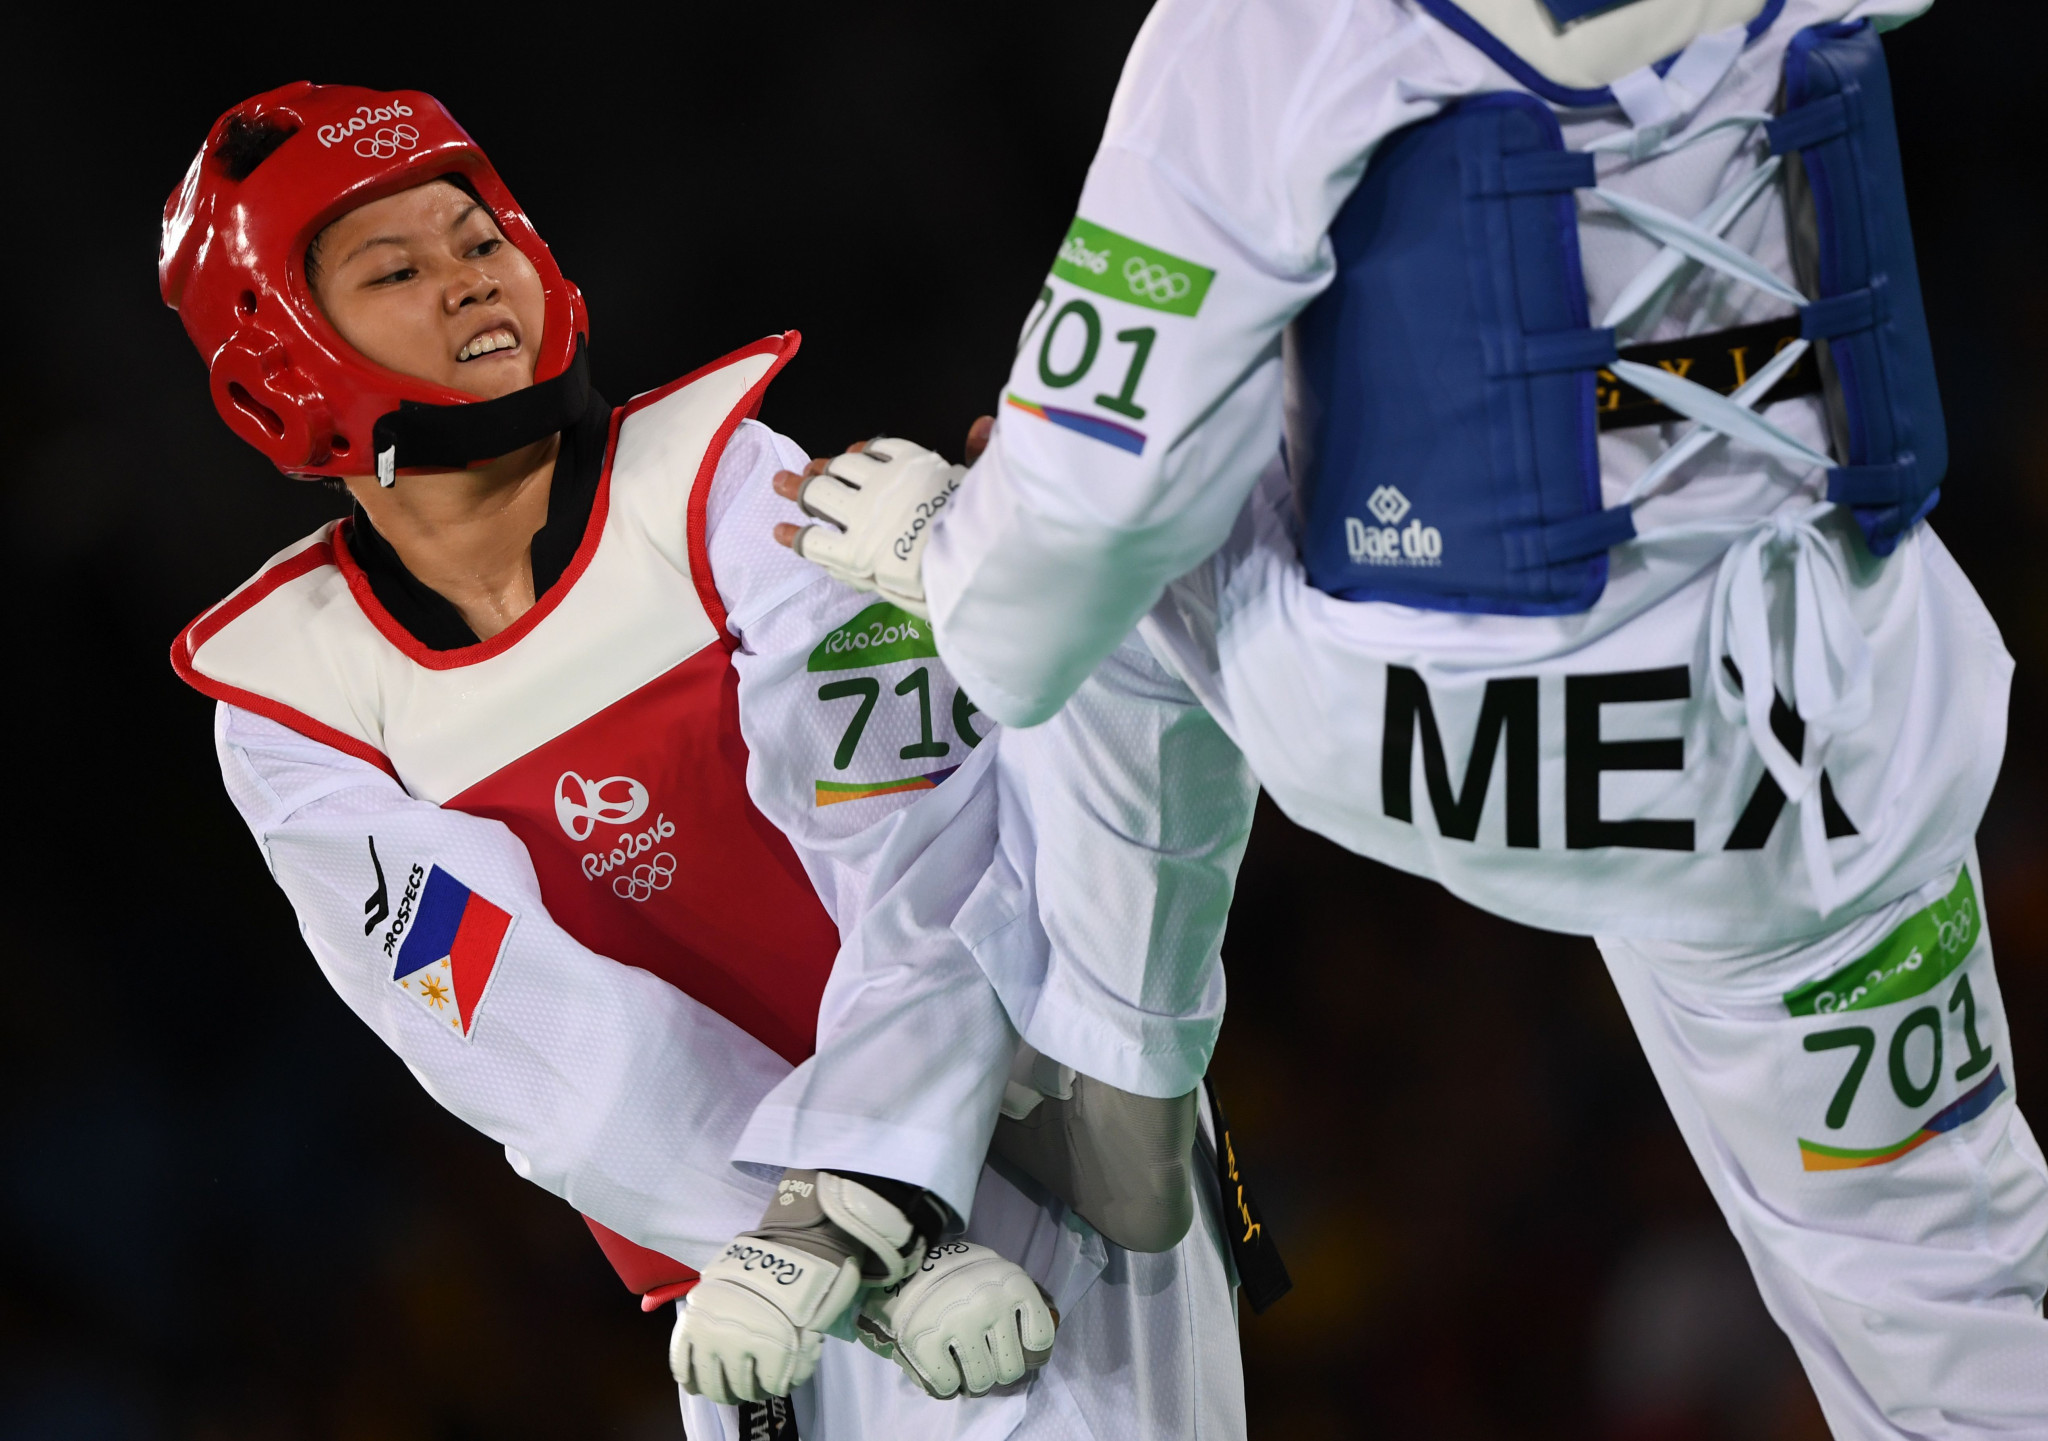 Taekwondo athletes among Philippines Olympic hopefuls attending three-month training bubble